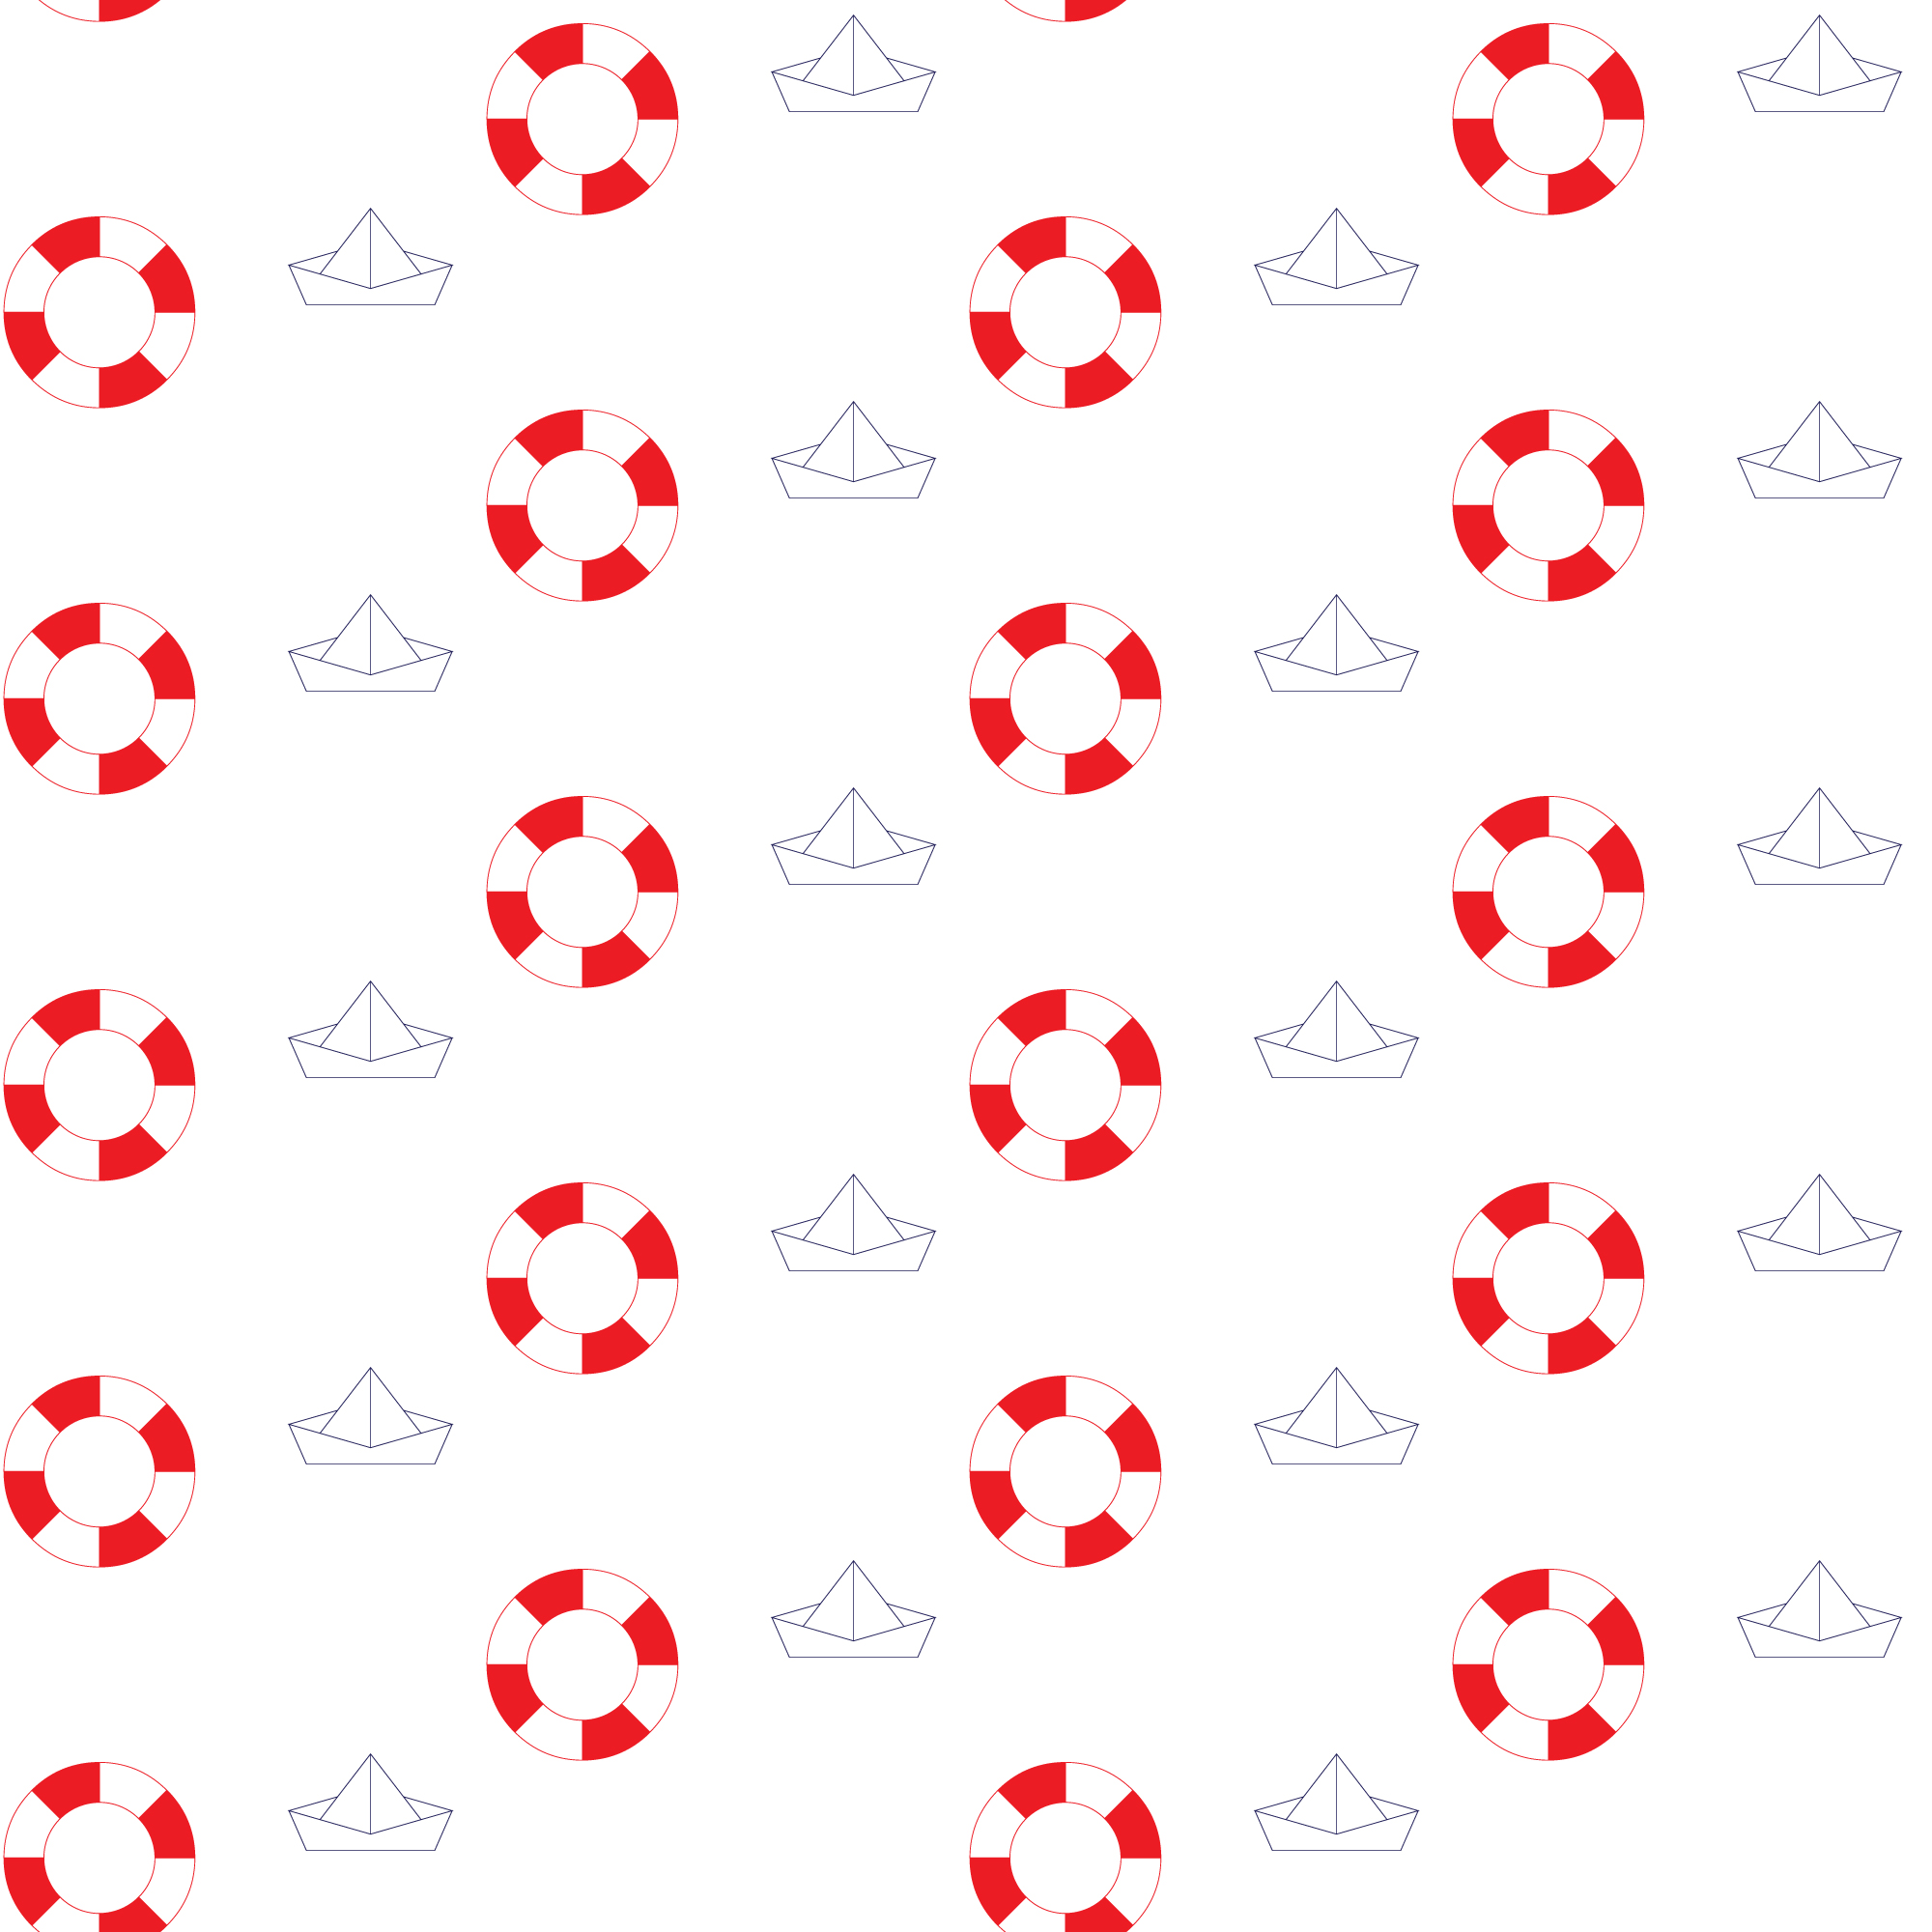 Red and white floats pattern background